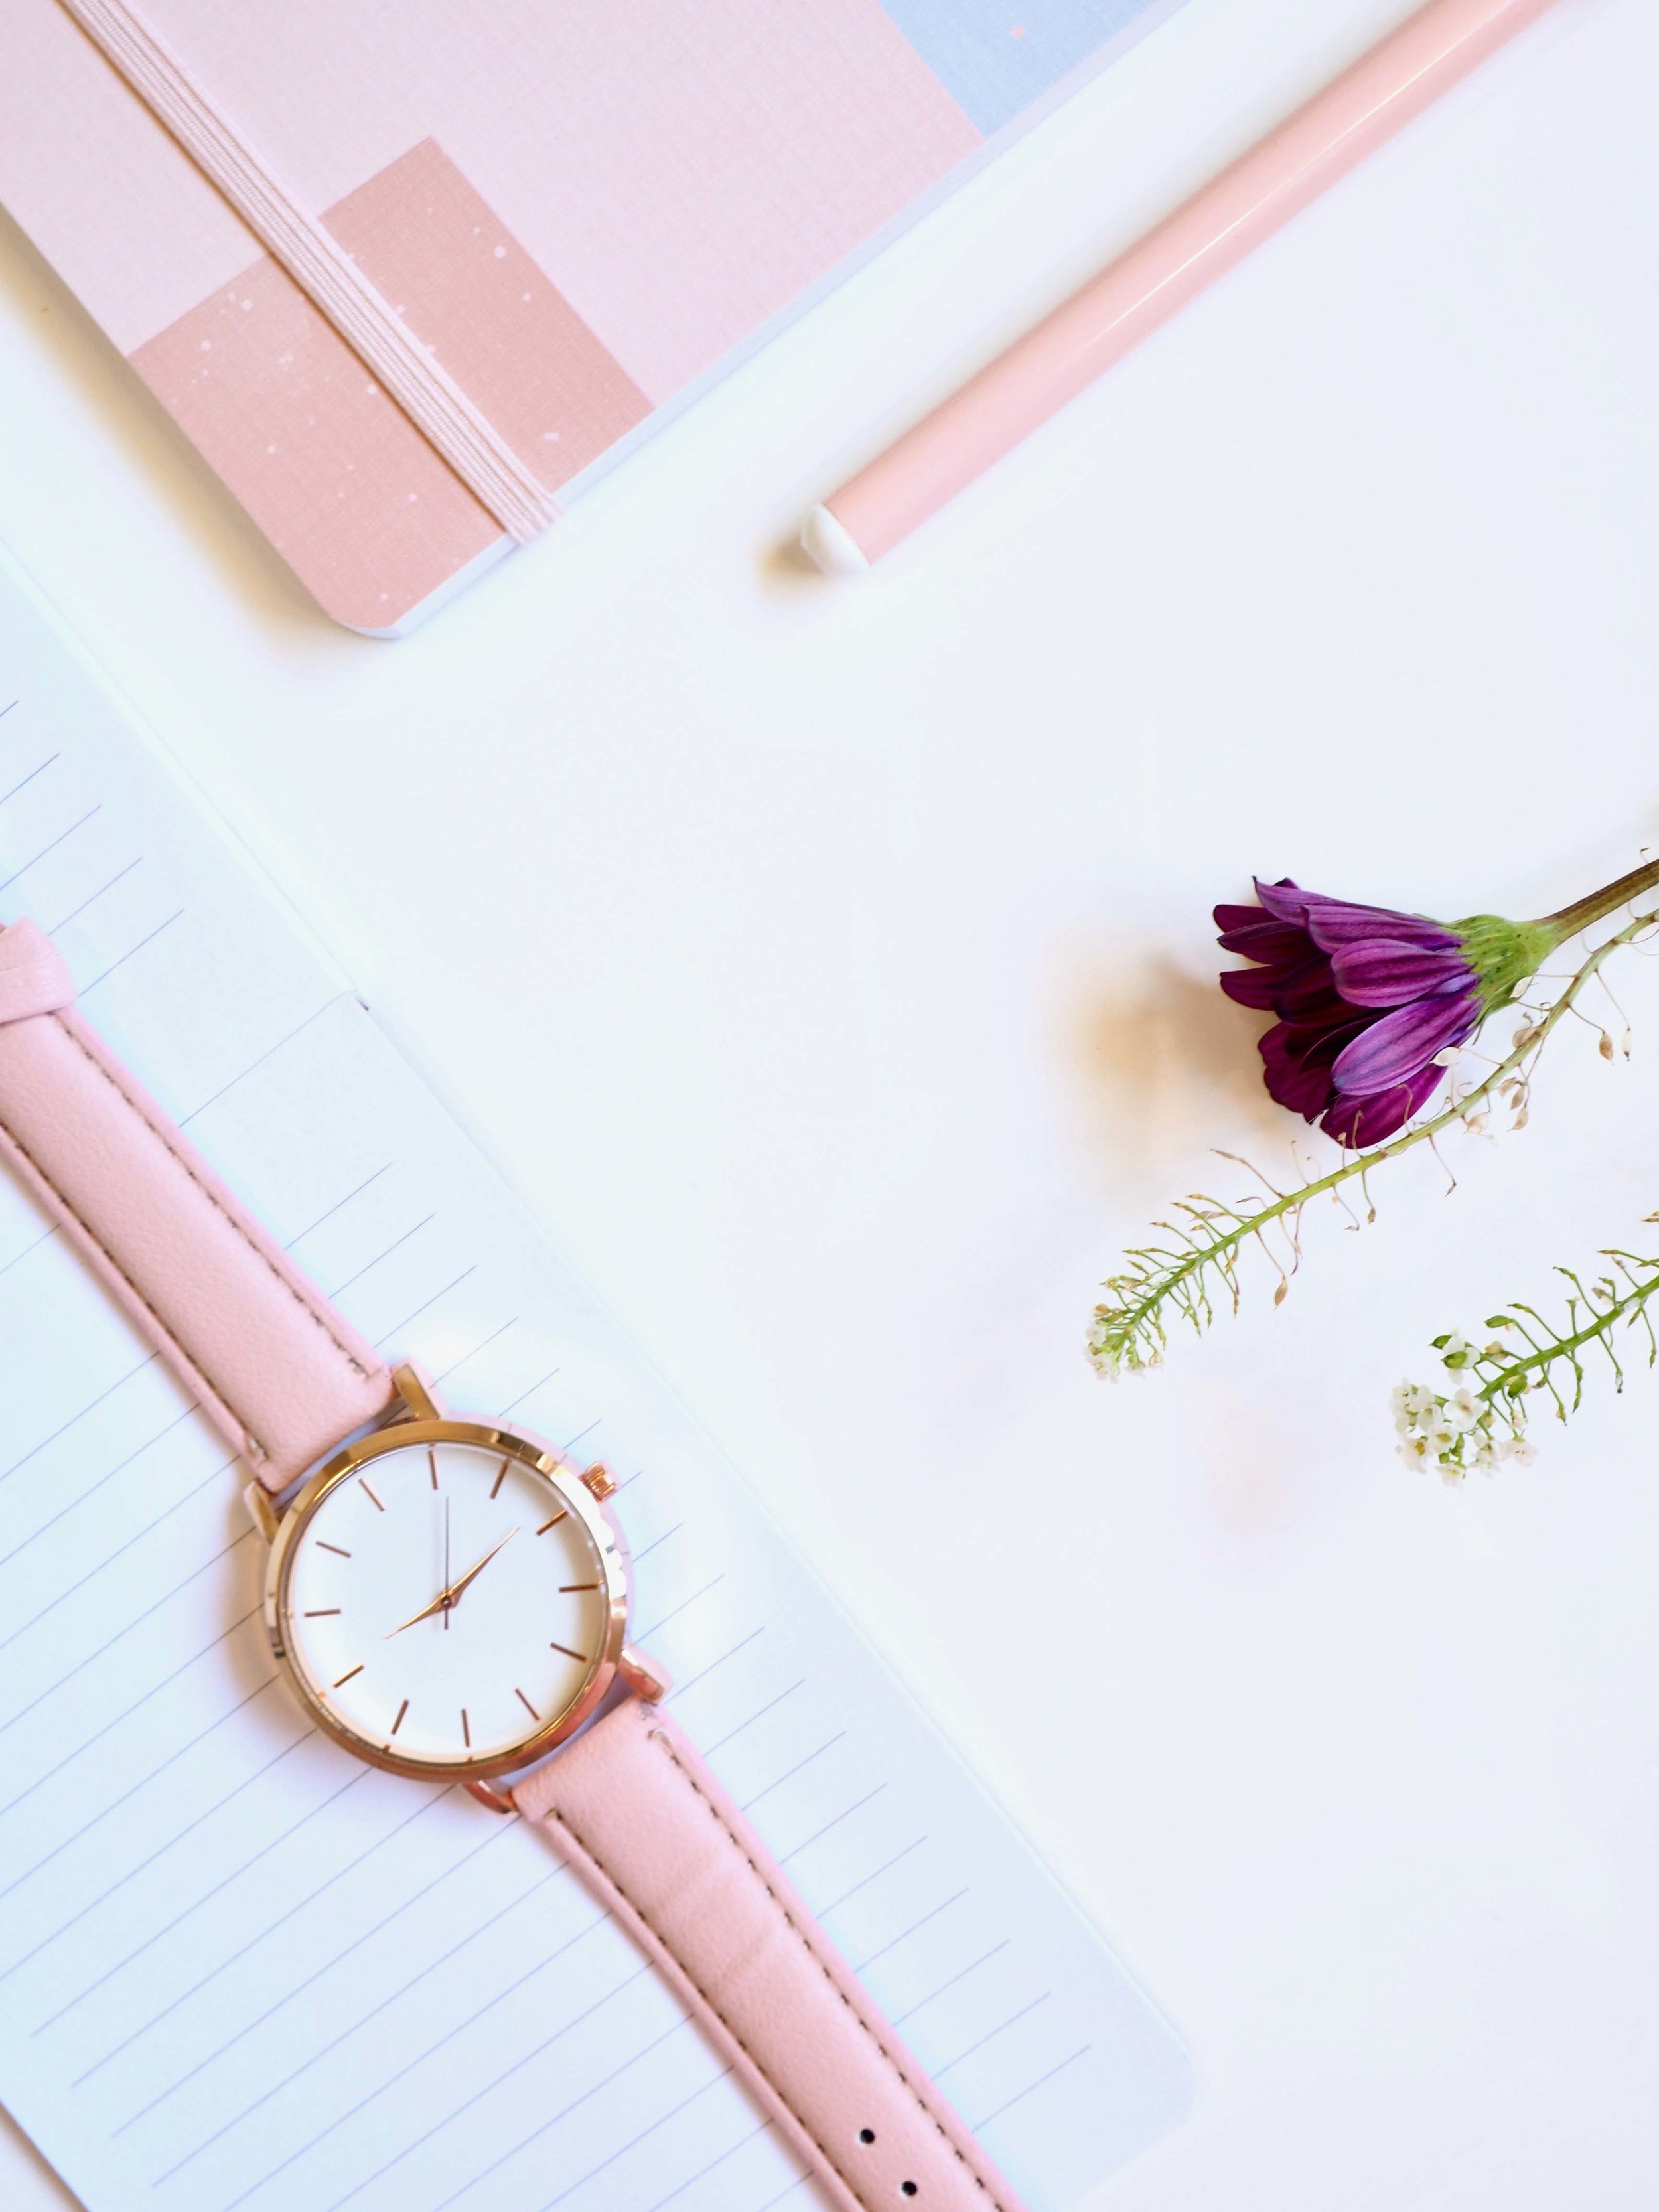 Watch and flowers in pink and purple.